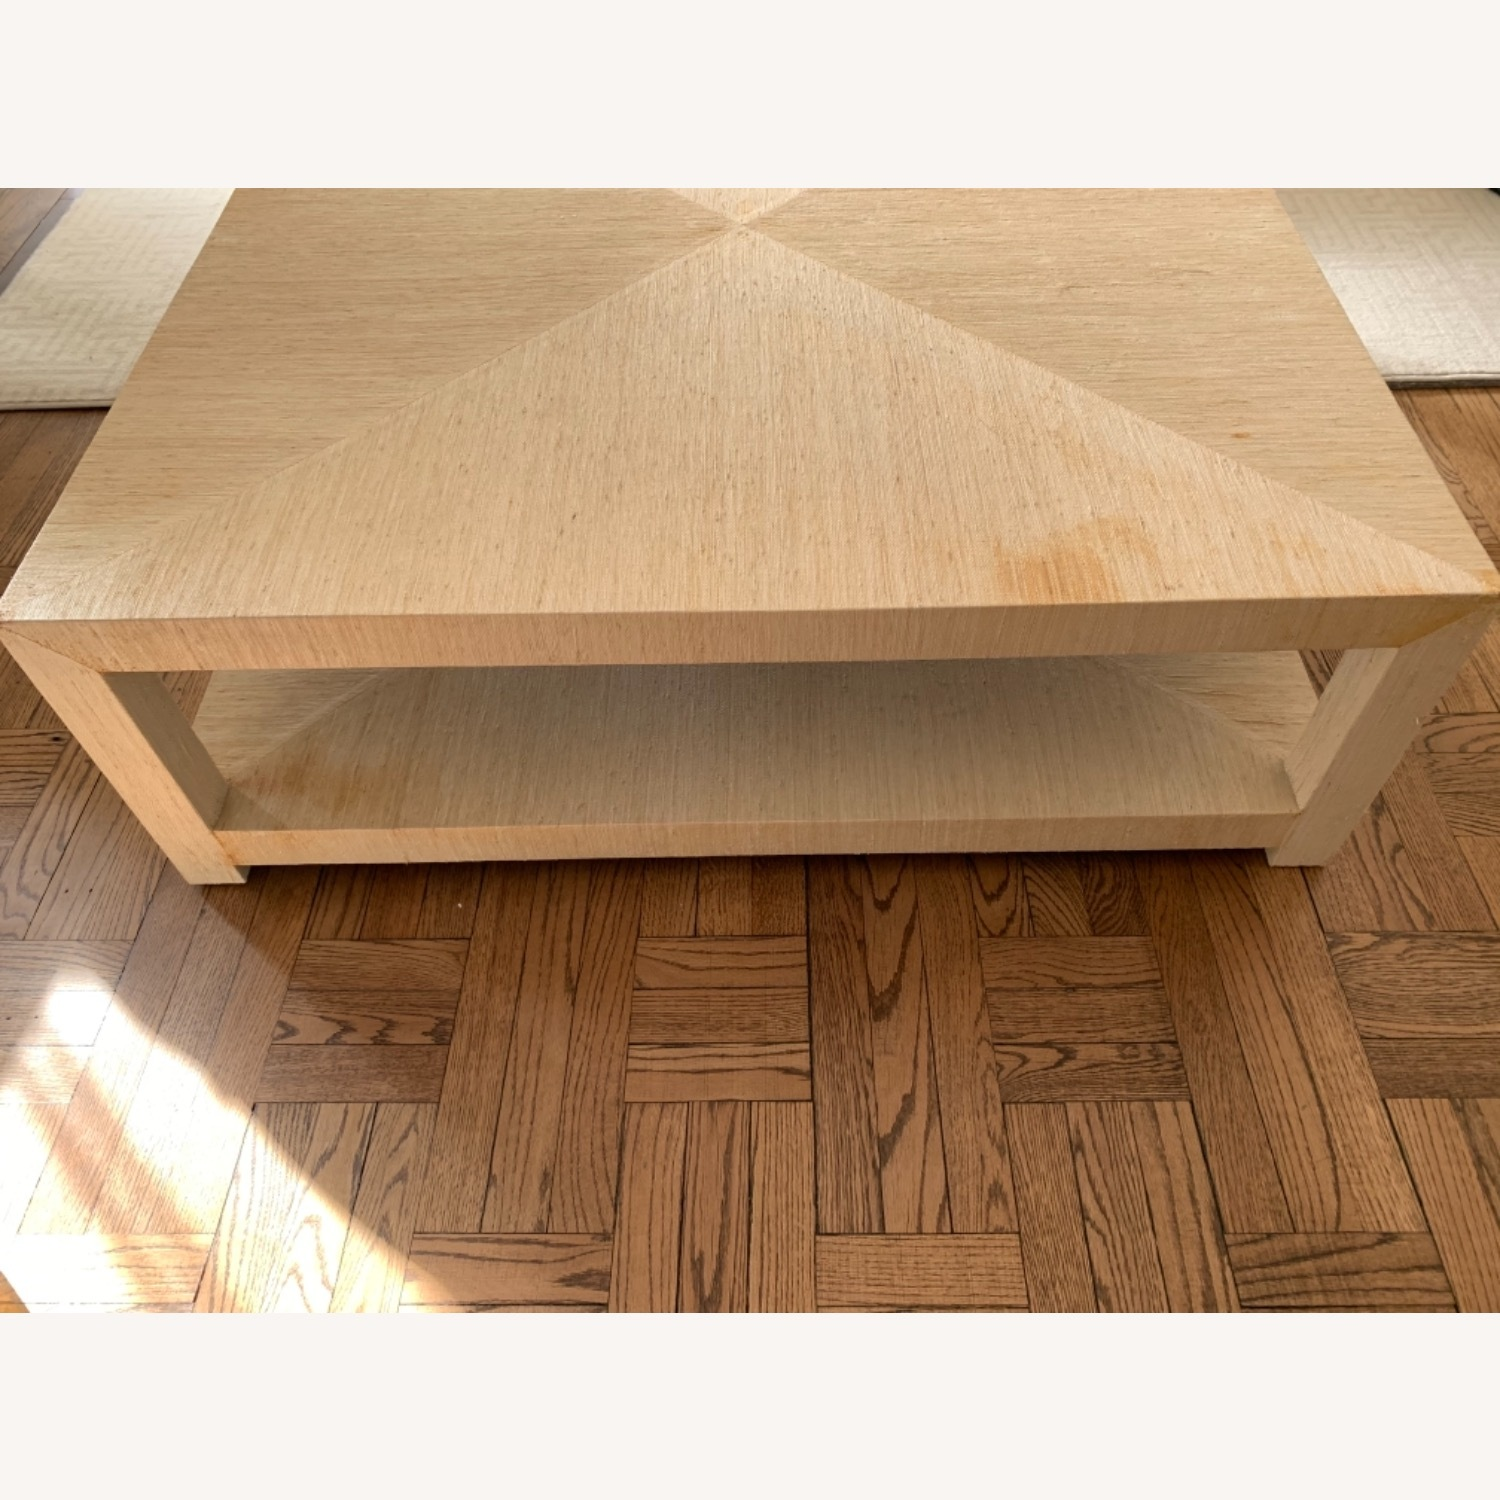 Serena & Lily Driftway Coffee Table - image-4